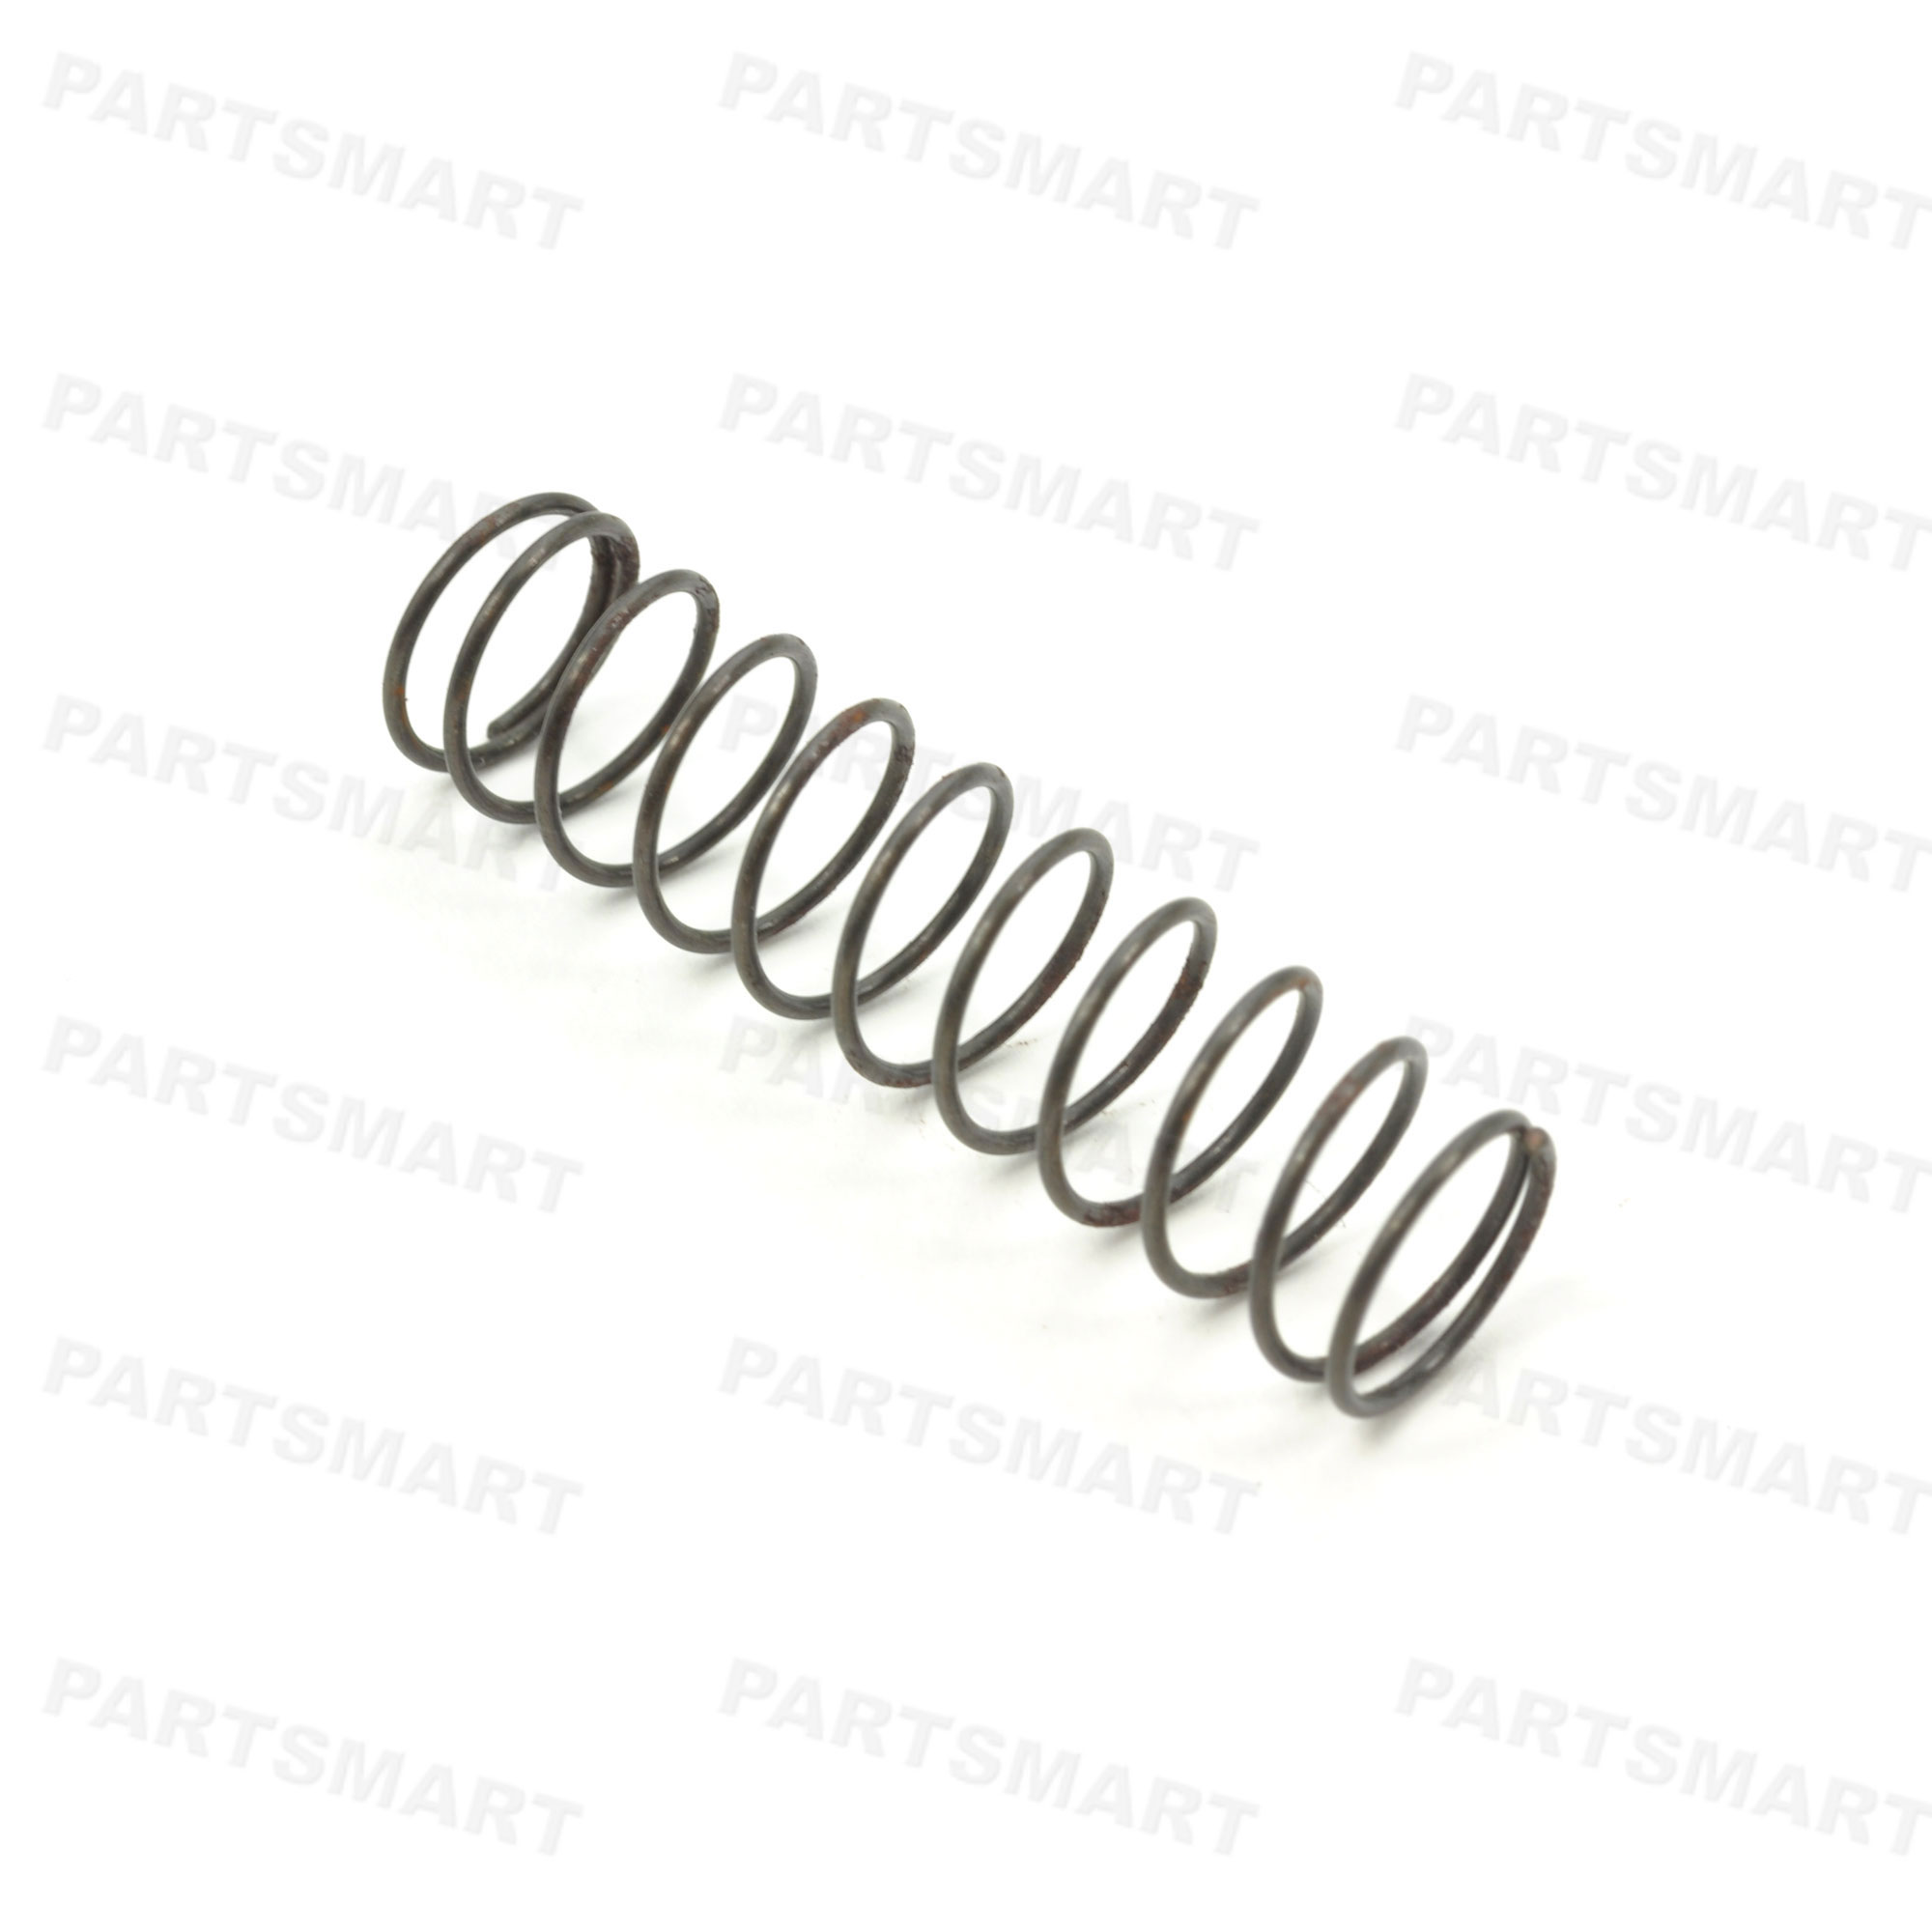 RG5-3520-SPR Spring, for Tray 1 Paper Guide Plate for HP